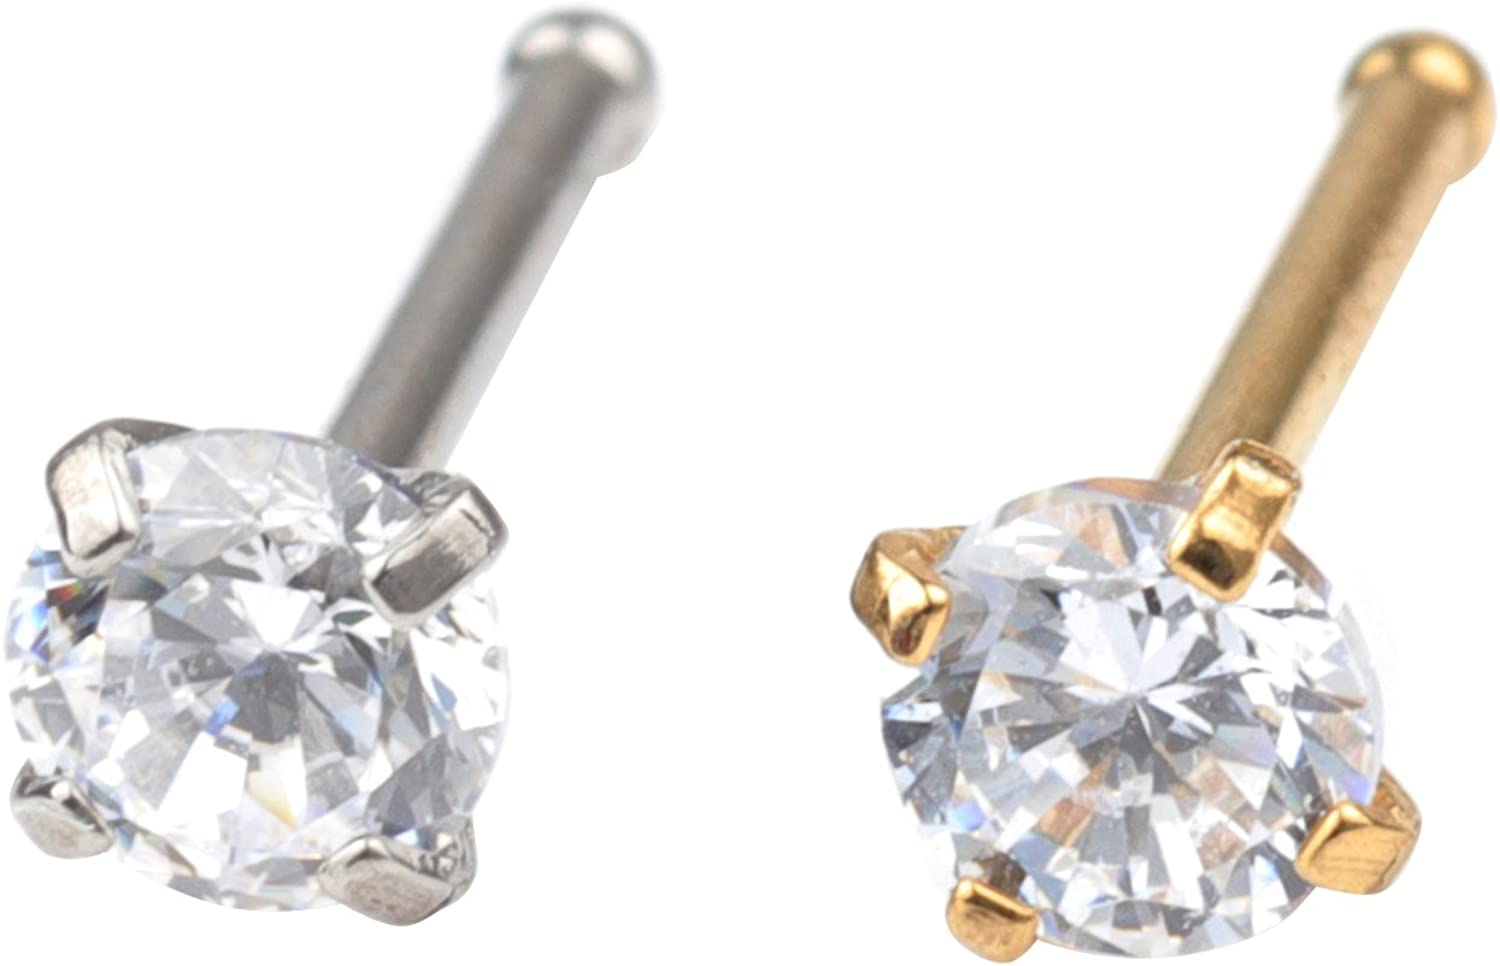 FORYOU FASHION Surgical Steel 18G 3mm Diamond CZ Nose Rings Studs Piercing Ear Body Piercing